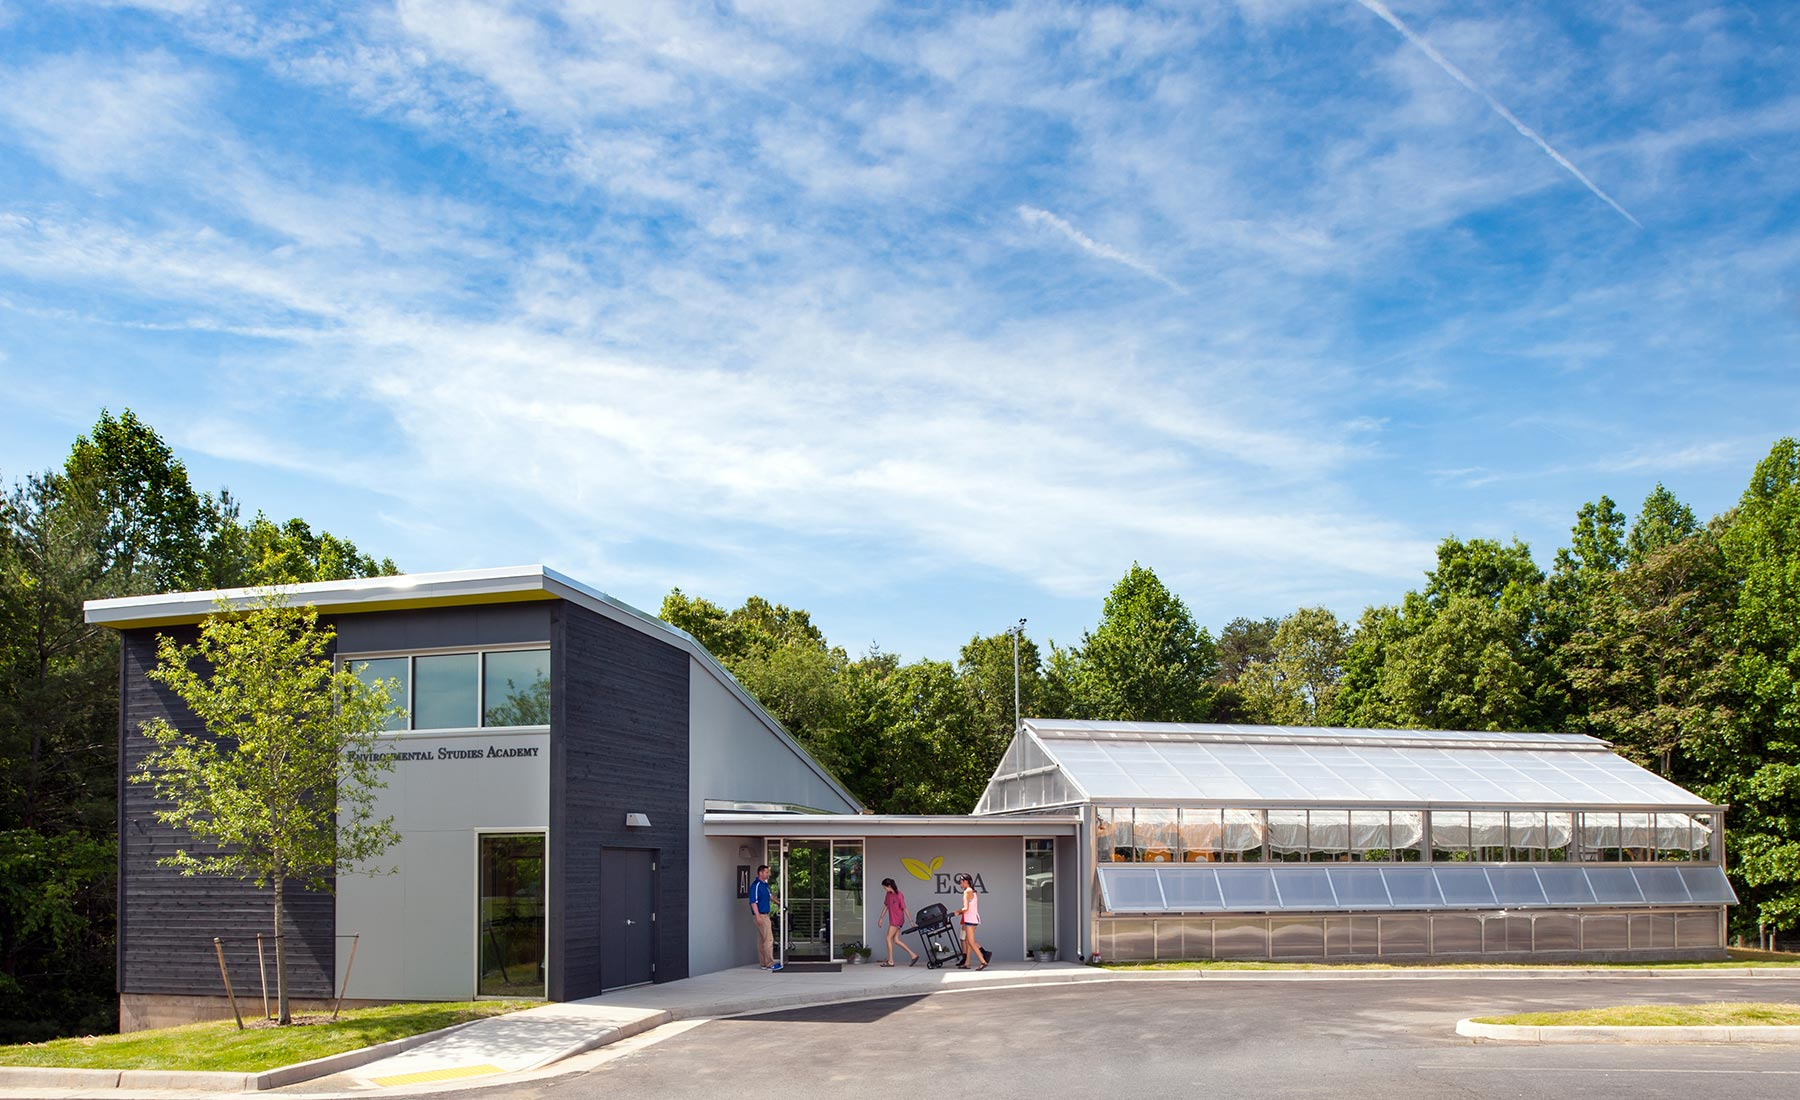 The greenhouse crozet - The Esa Facility Supports The Academy S Mission To Provide Hands On Lab Based Learning Experiences That Encourage Inquiry And Discovery